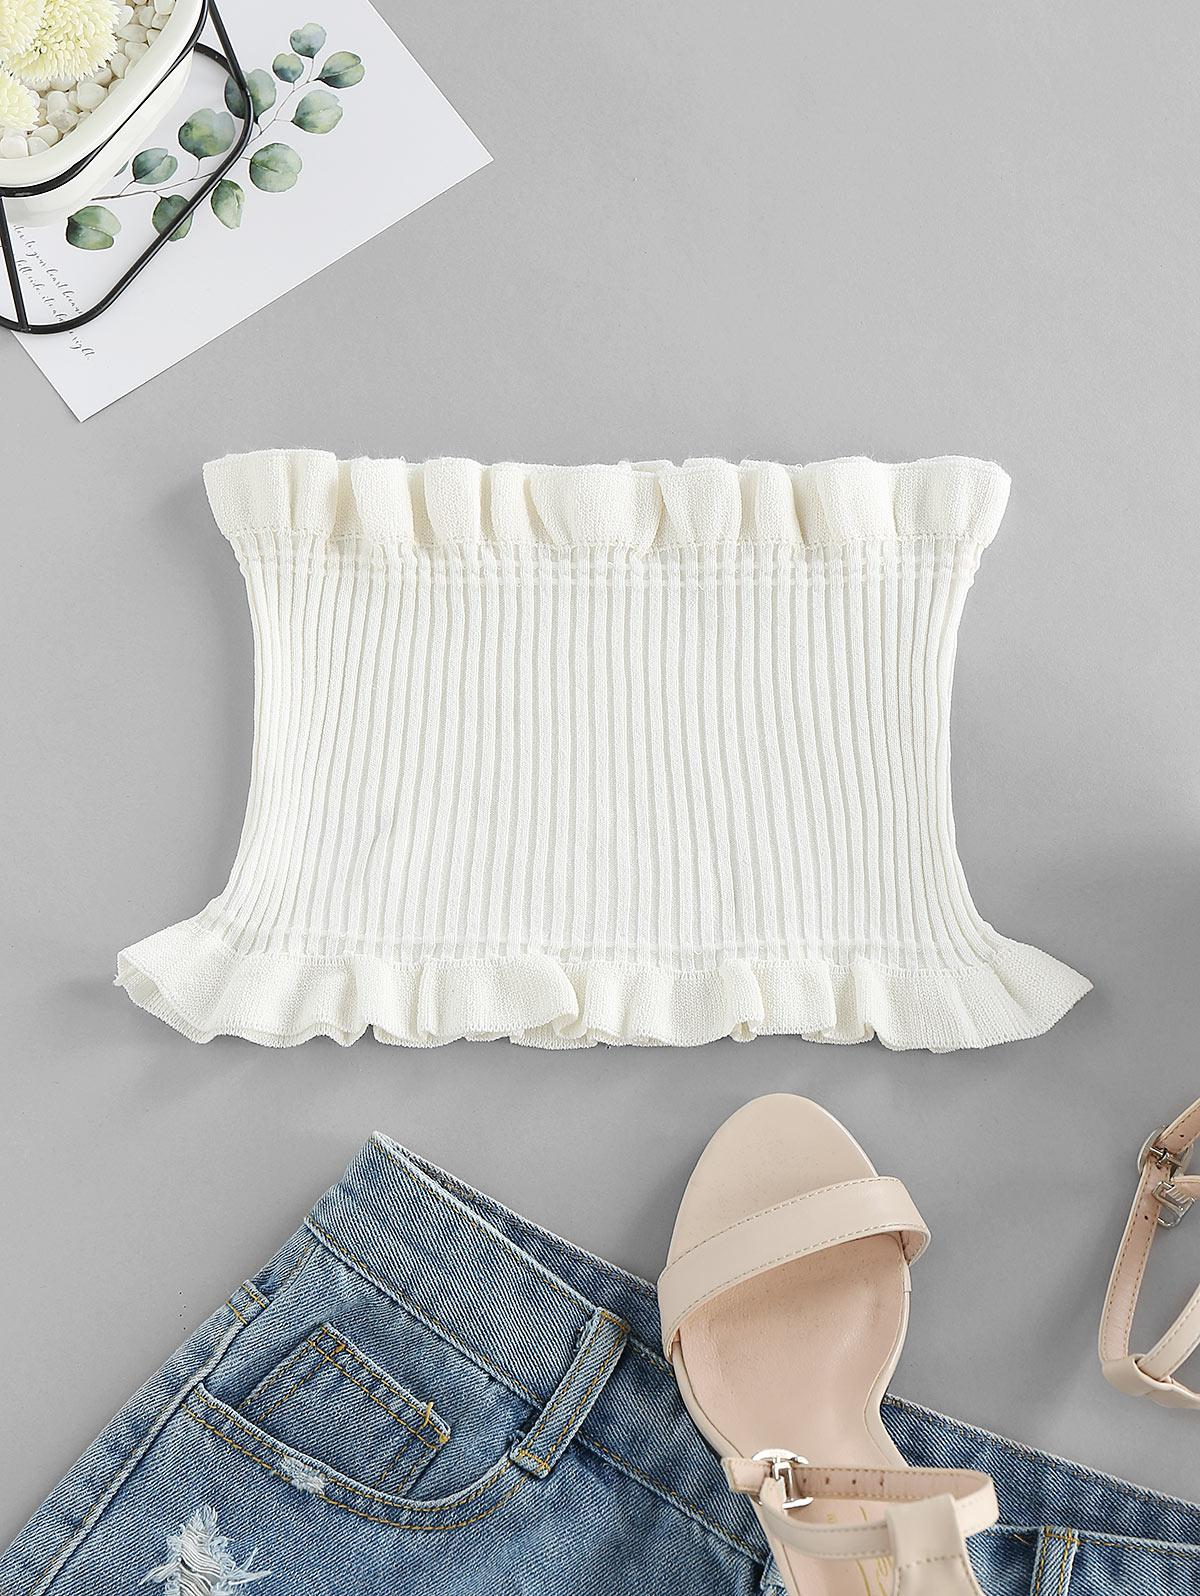 ZAFUL Strapless Ruffled Smocked Crop Top фото